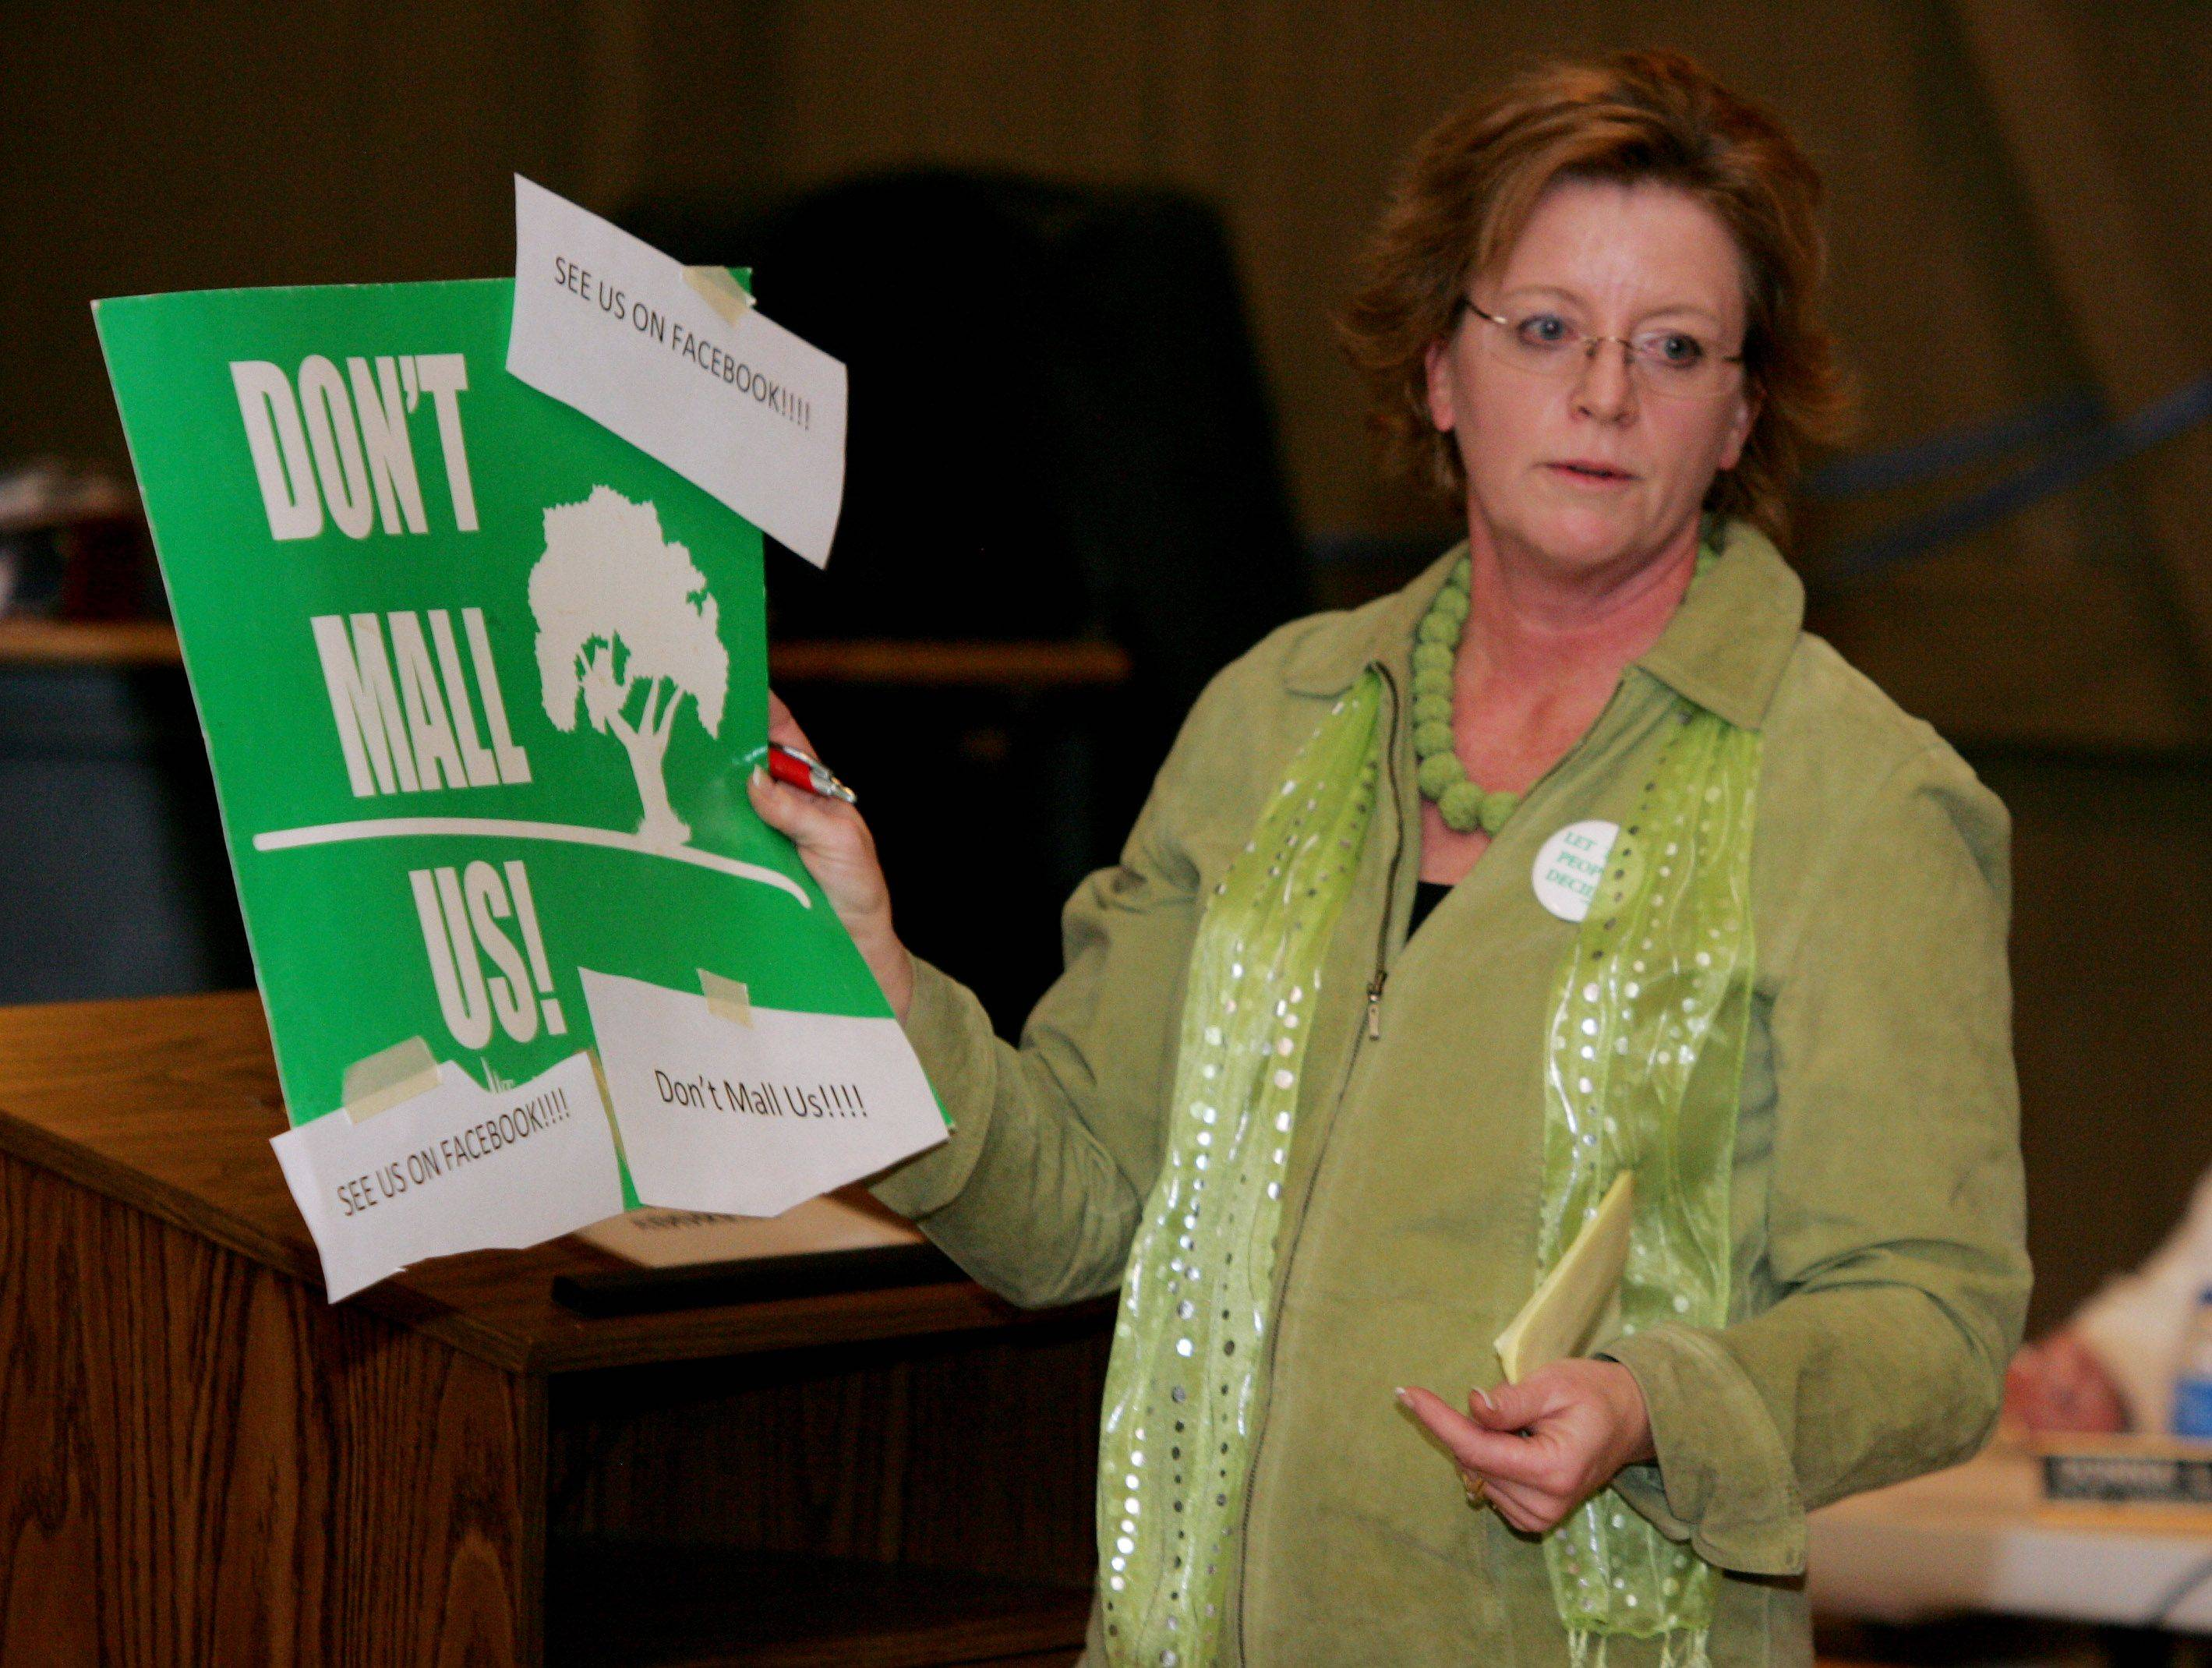 Diane Benz of the Valentine Manor subdivision holds up an old sign as she criticizes the plan for a shopping center during a special Hawthorn Woods village board meeting Thursday to discuss Lake County's rezoning of the Dimucci property for a shopping center.